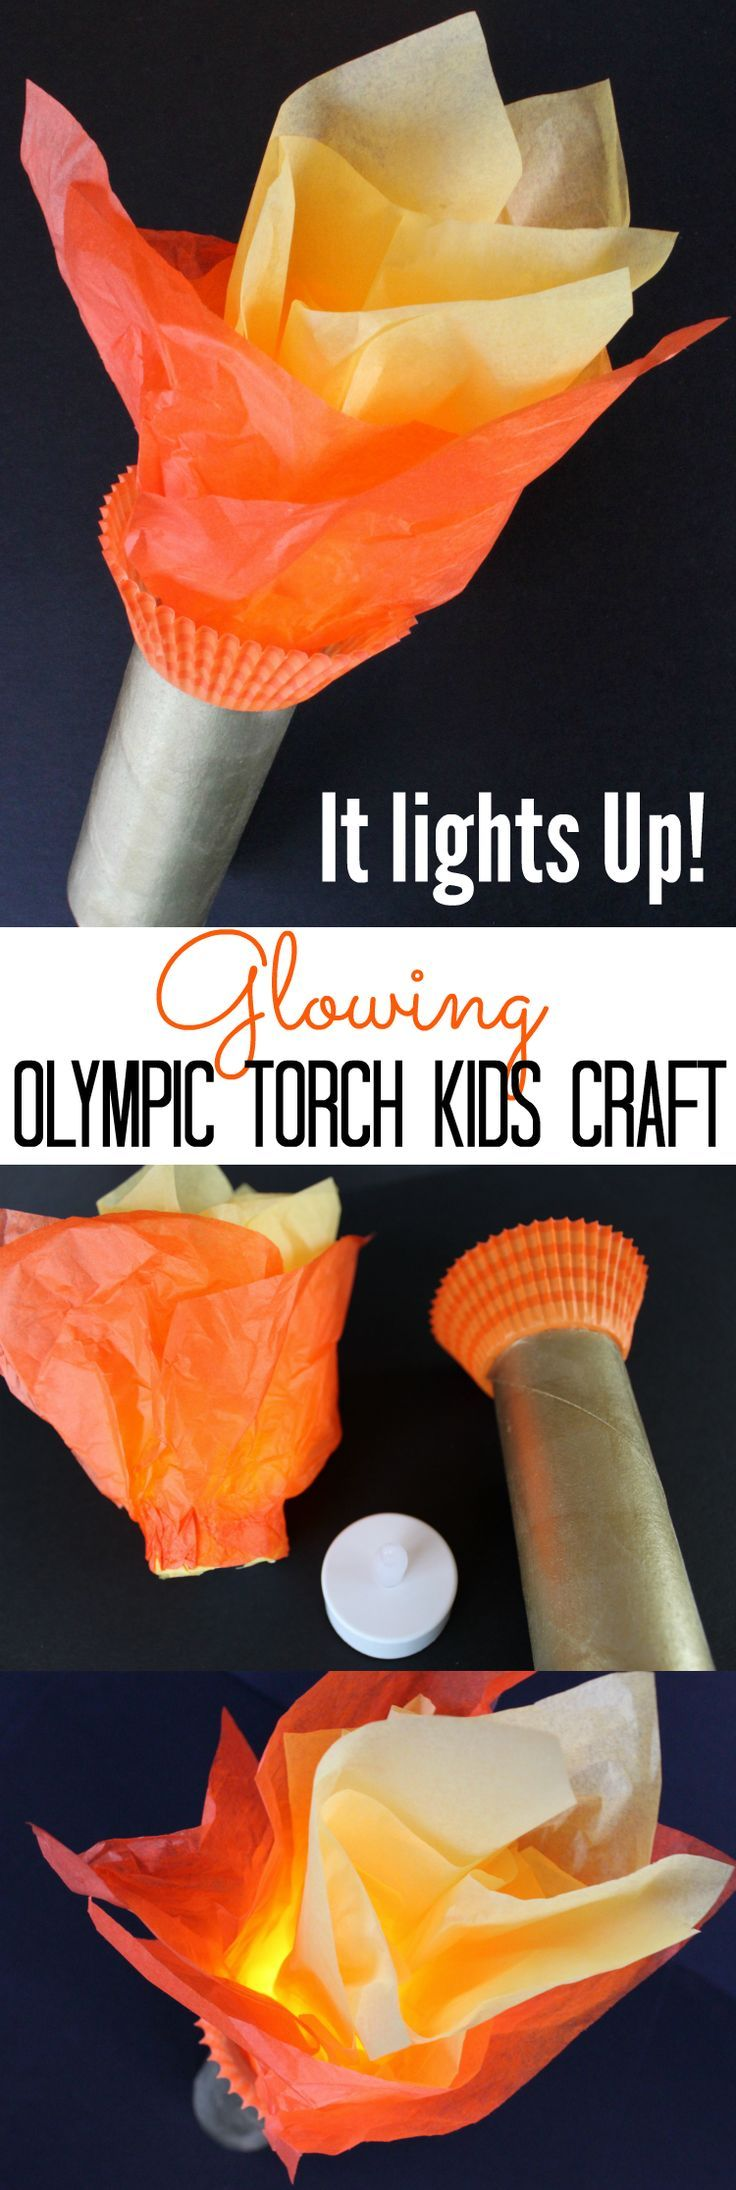 IT LIGHTS UP! Glowing Tealight Olympic Torch Kids Craft for the Summer Olympics and Winter Olympics games - A great toilet paper roll craft for kids to hold during the Olympic Opening Ceremony!